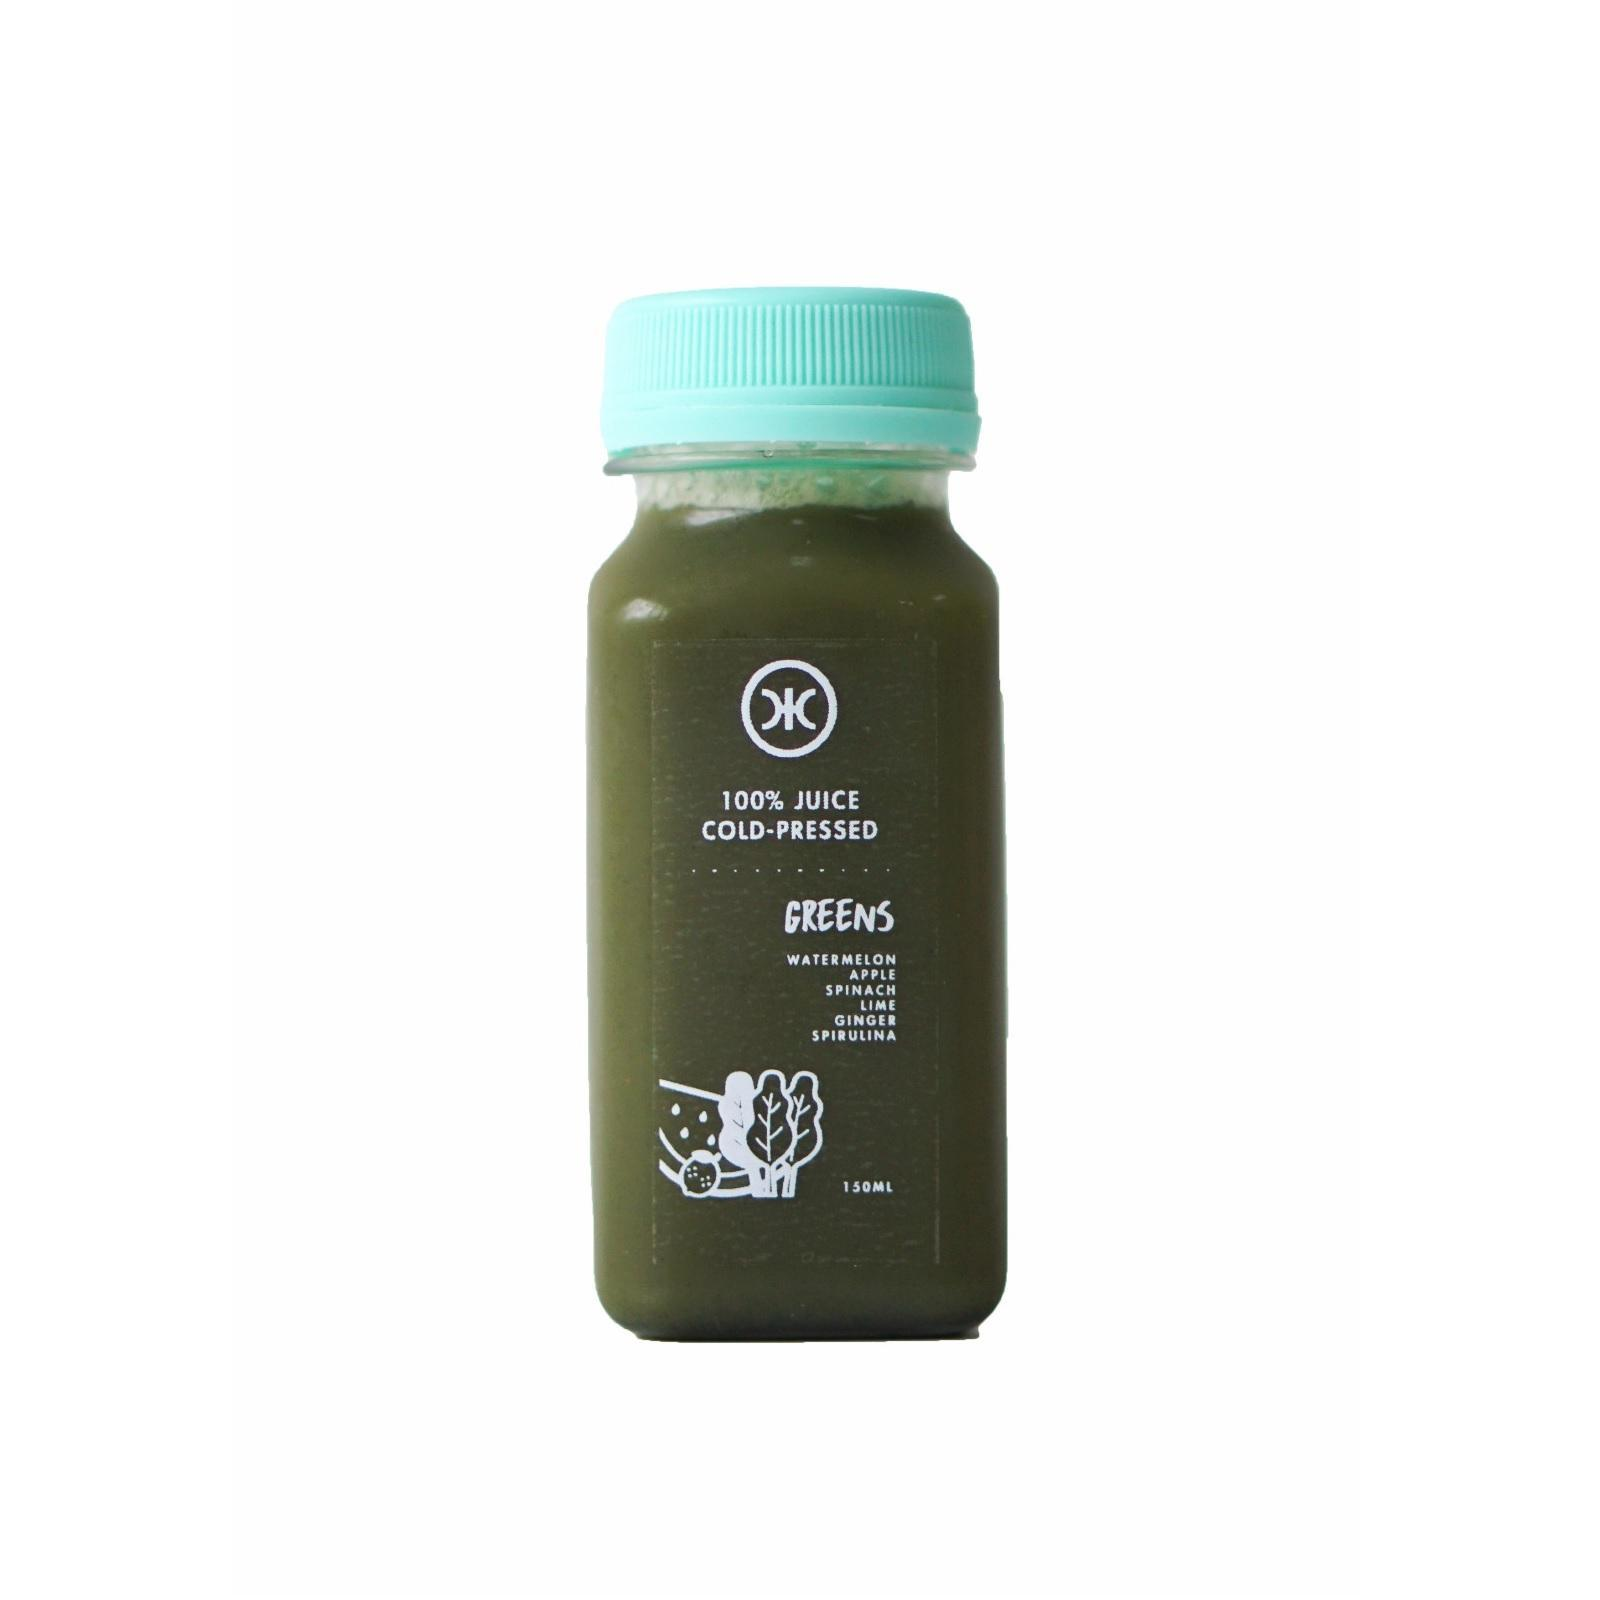 Hicjuice Greens [gift With Purchase] By Redmart.